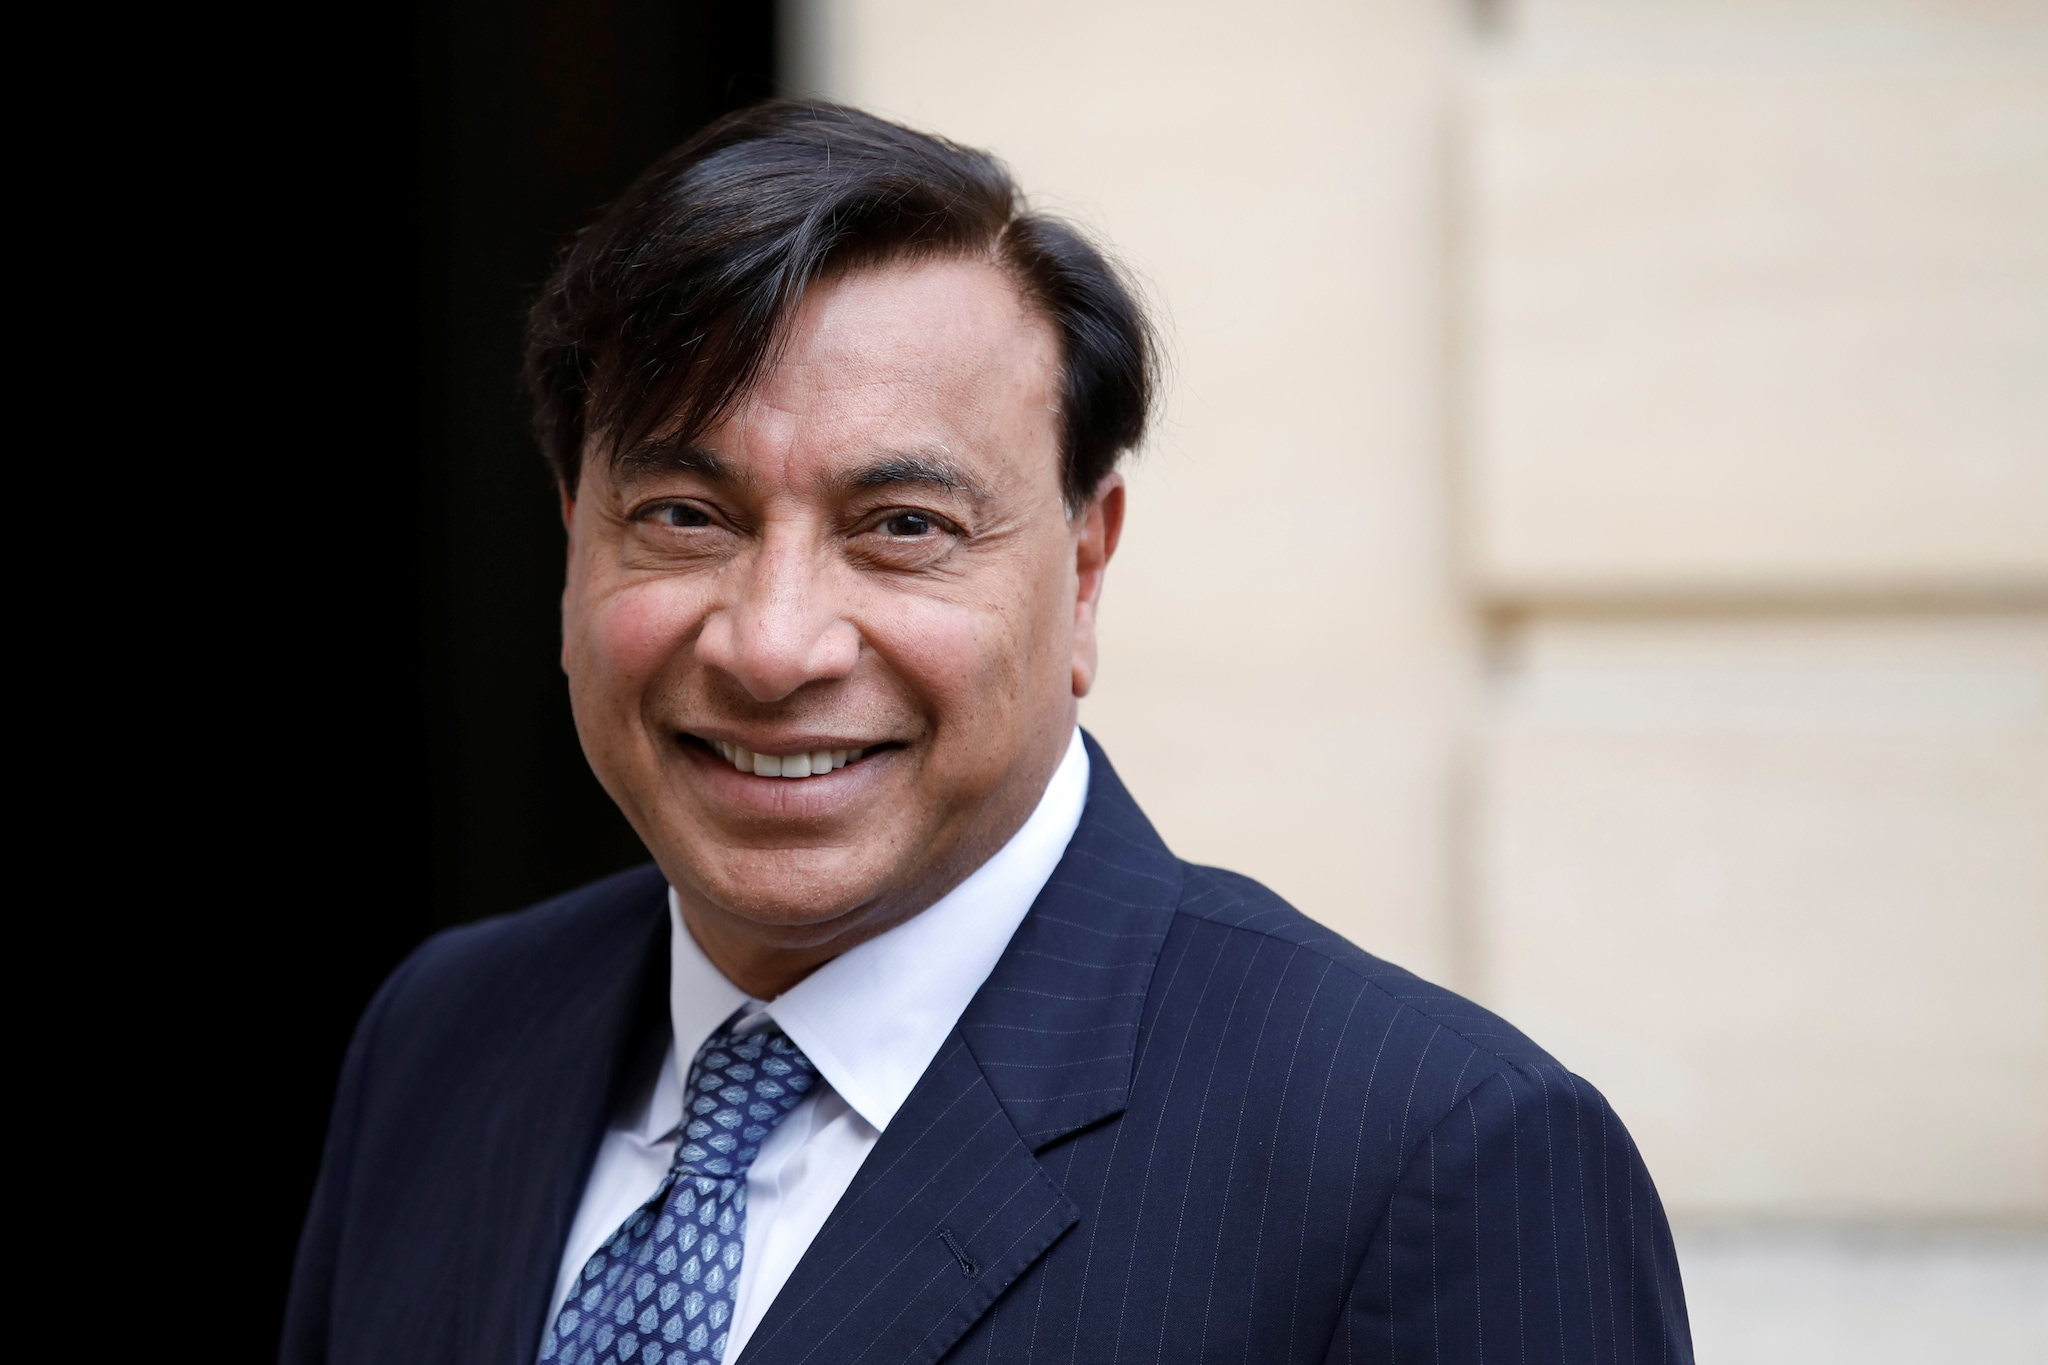 #6 Lakshmi Mittal, chairman and CEO, ArcelorMittal (Real-time net worth: $11.5 billion): Lakshmi Mittal serves as chairman and CEO of ArcelorMittal, the world's biggest steelmaker. Hailing from a steel clan, he separated from his siblings to start Mittal Steel, then went on to merge the company with France's Arcelor in 2006. Benefiting from the steel recovery, the company reported a surge in net profit to $4.6 billion in 2017 on revenue of $68.7 billion. ArcelorMittal, along with Italian steel firm Marcegaglia, acquired Italy's loss-making steel group Ilva for $2.1 billion in June 2017. (REUTERS/Benoit Tessier)